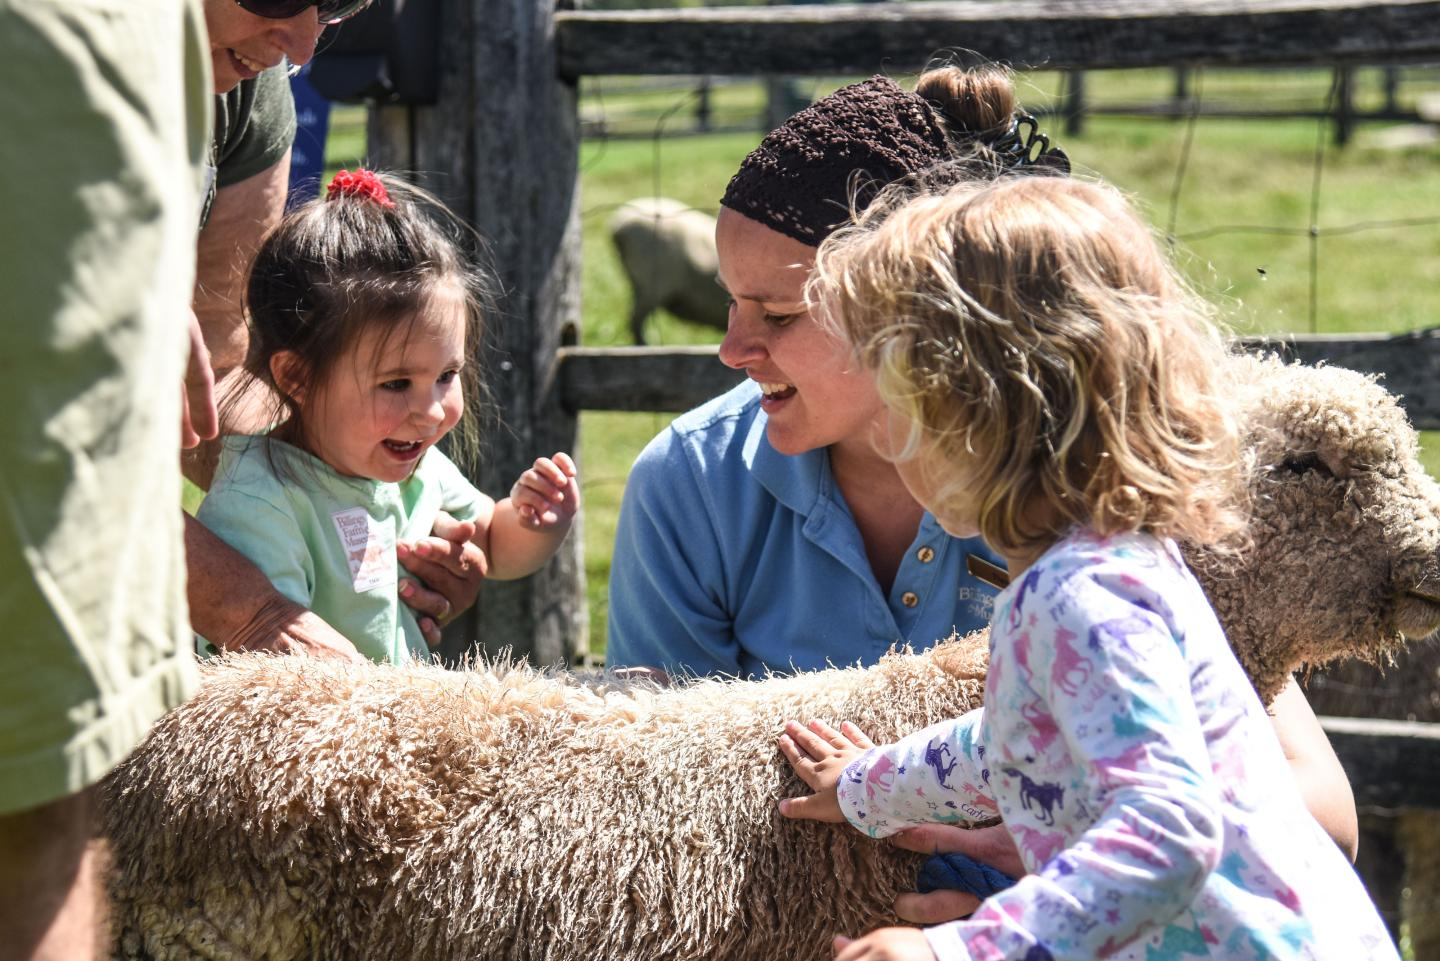 Visitors with the sheep at Billings Farm